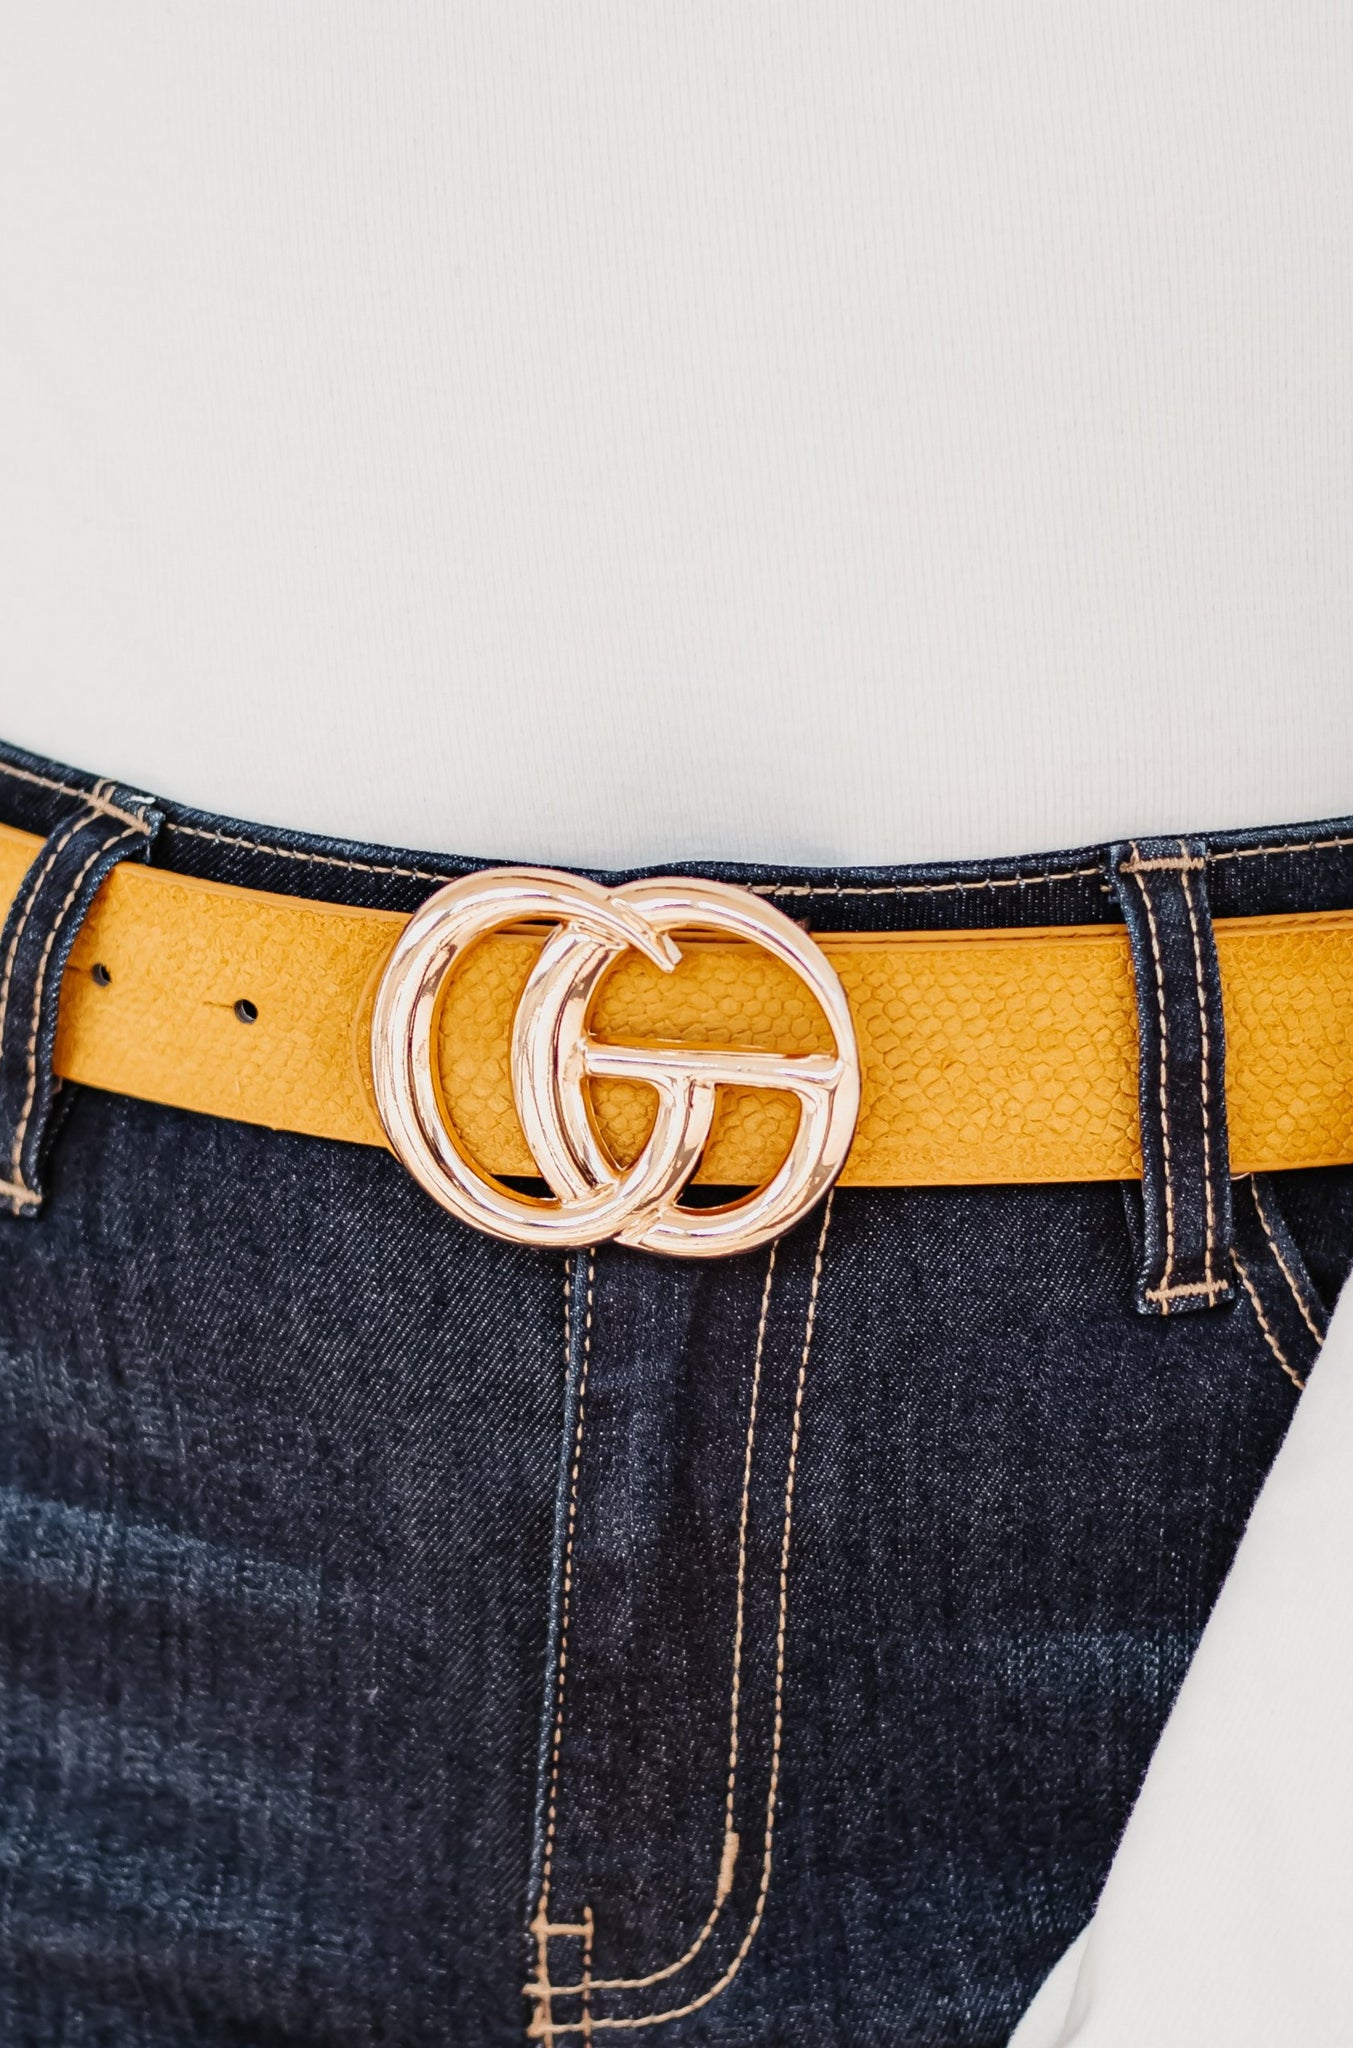 GIGI Velvety Animal Print Vegan Leather Belt ~ Mustard